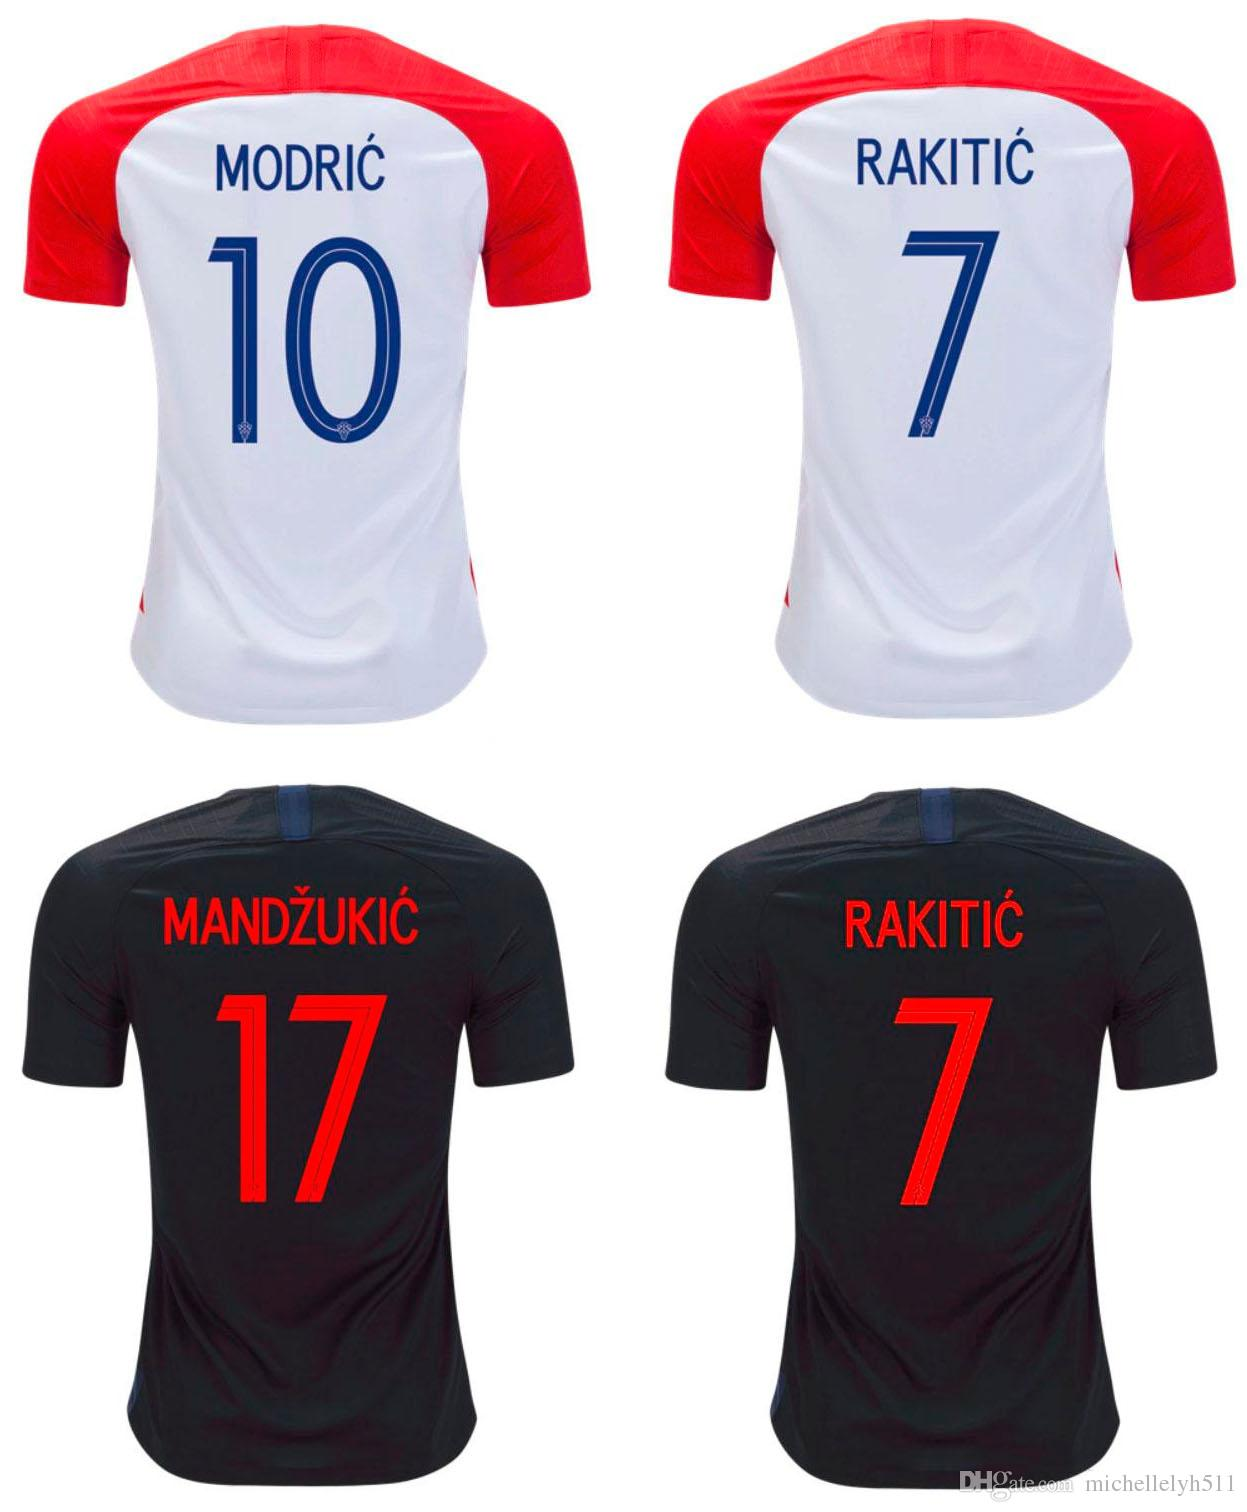 info for 233ea 696f3 buy croatia 7 rakitic home soccer country jersey b39ca f08c9